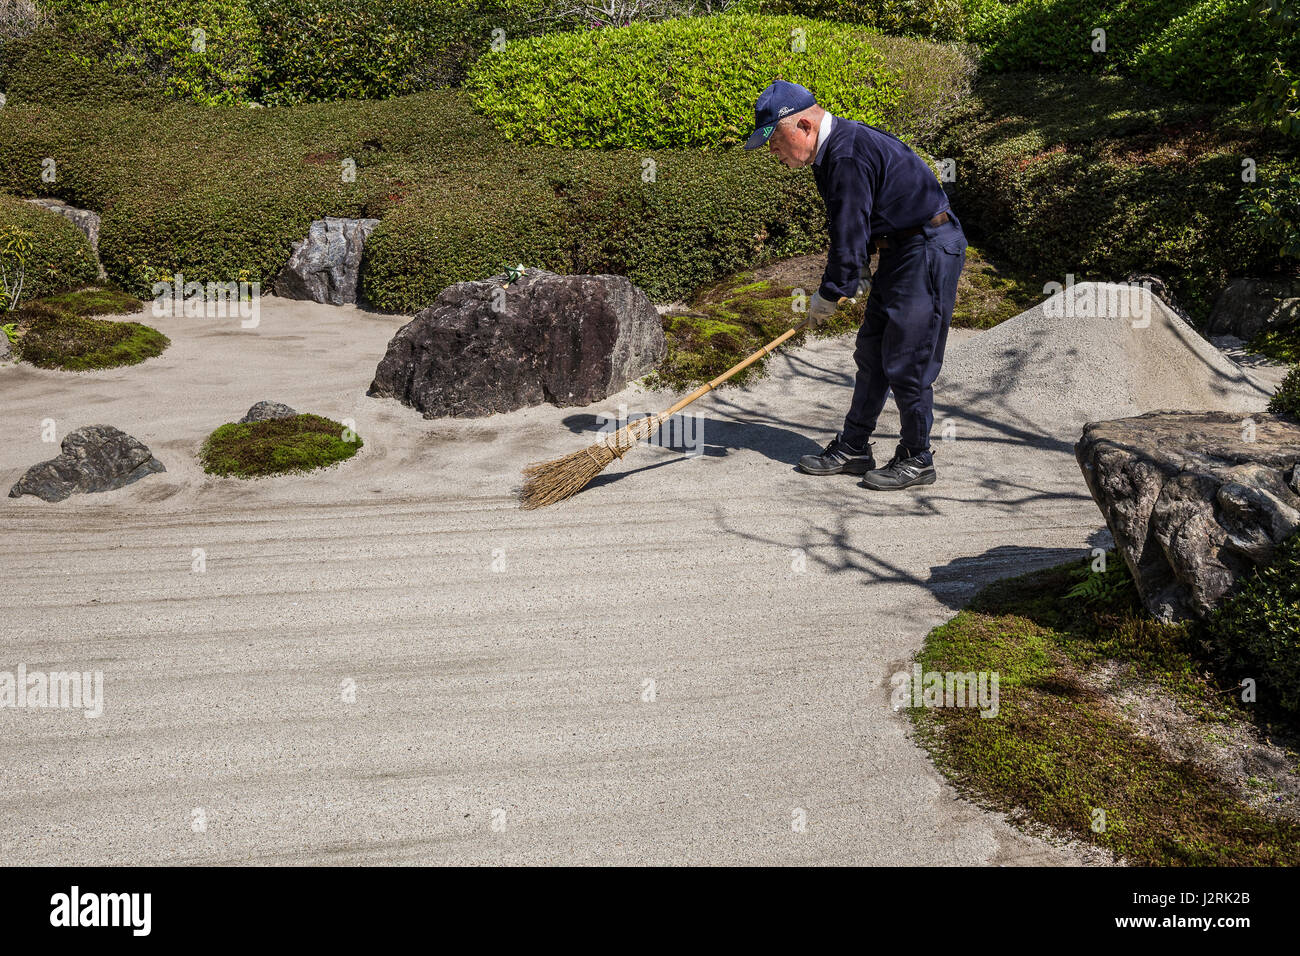 Meigetsuin Japanese Gardener - The karesansui zen garden of raked sand, rocks and plants at Meigetsuin Temple Garden - Stock Image